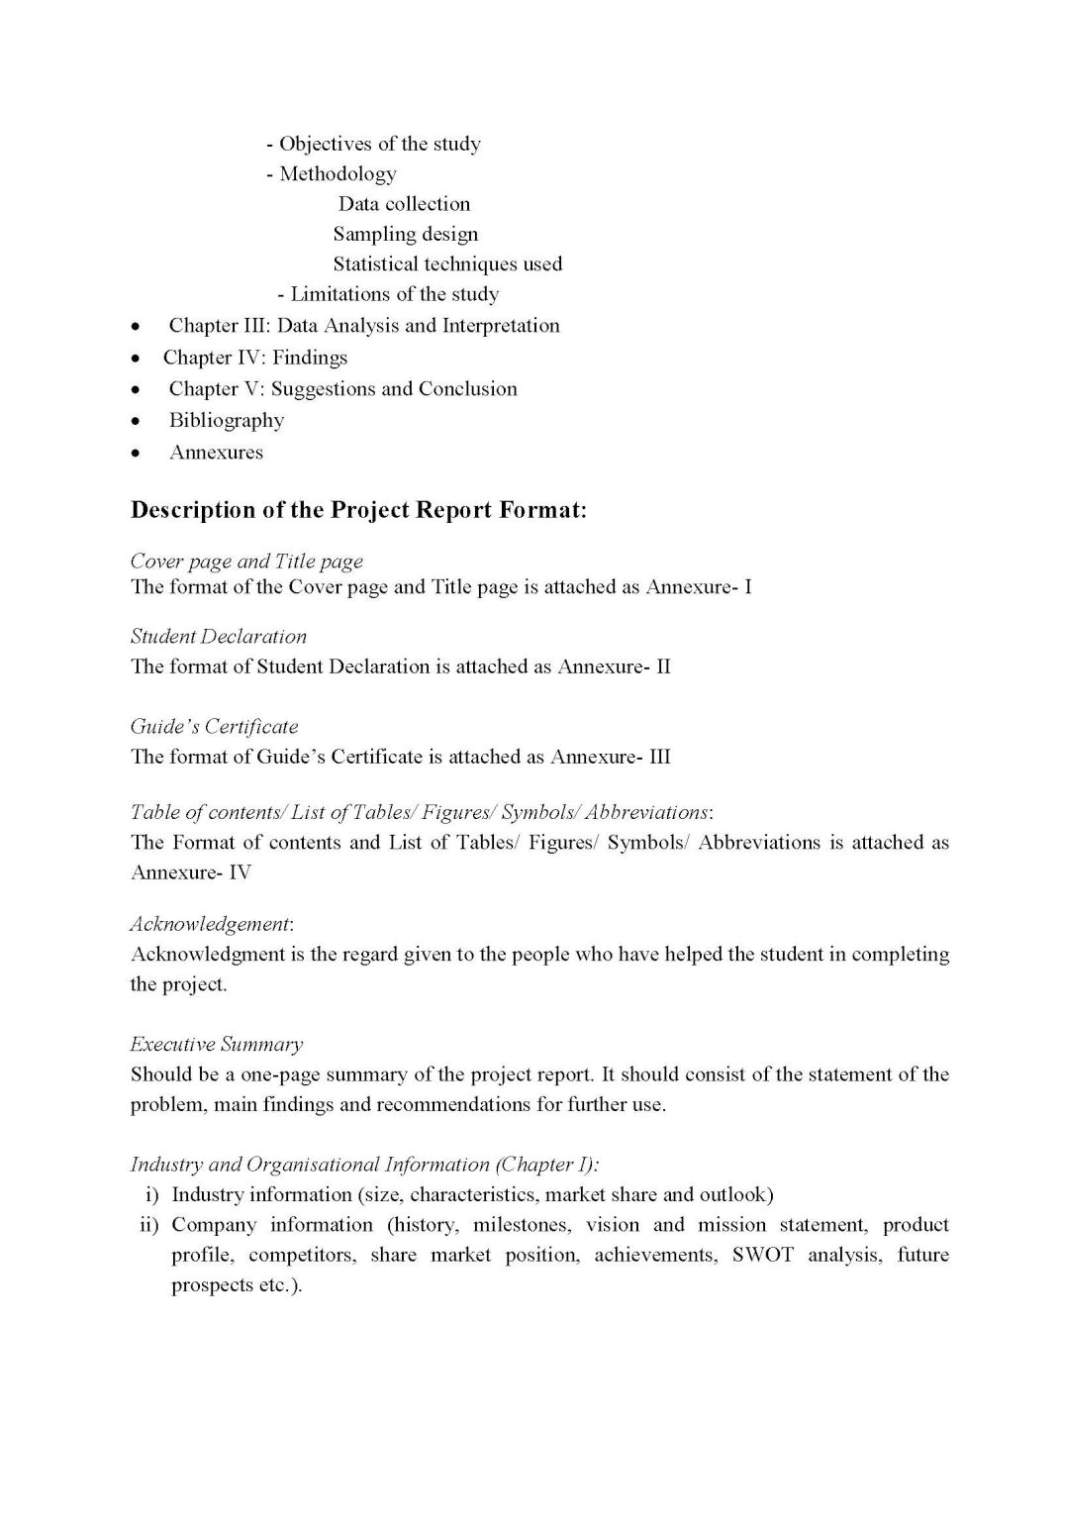 project report of sikkim manipal university student forum bba project report